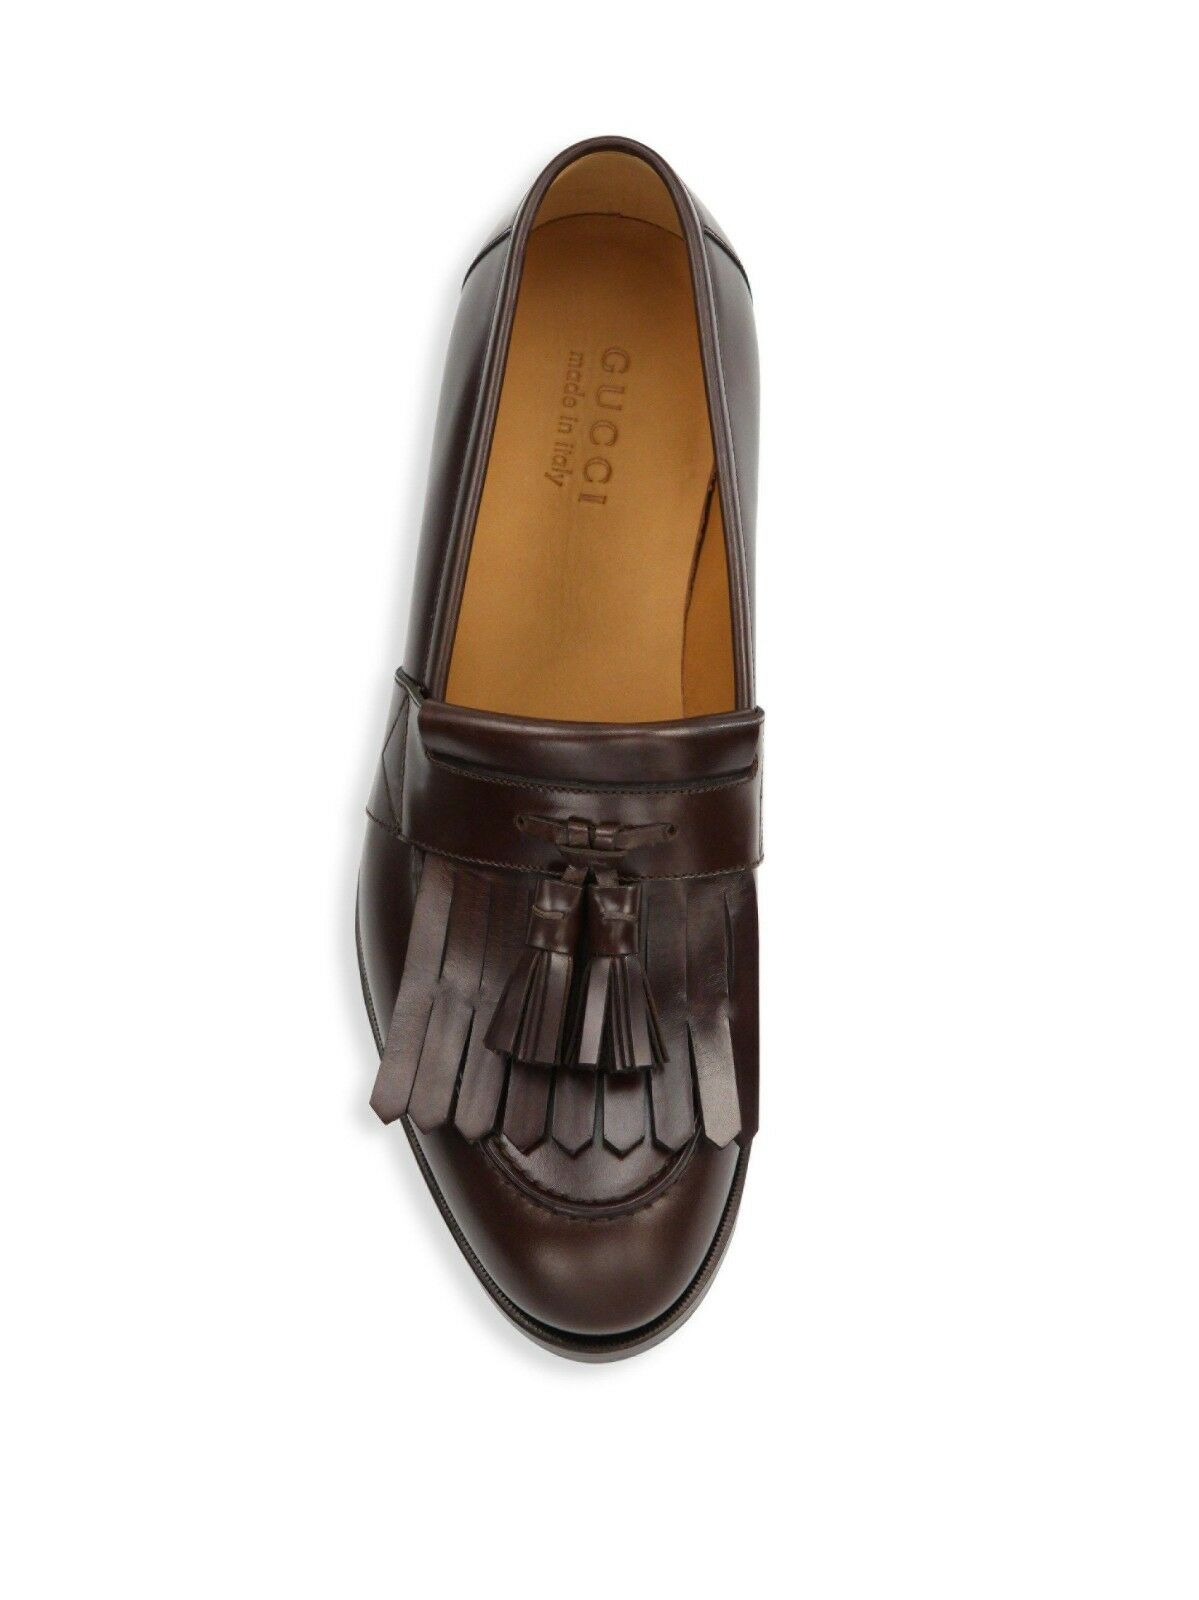 5bf328fef 100 Auth Men Gucci Queercore Brown Leather Tassel Drivers/loafers UK ...